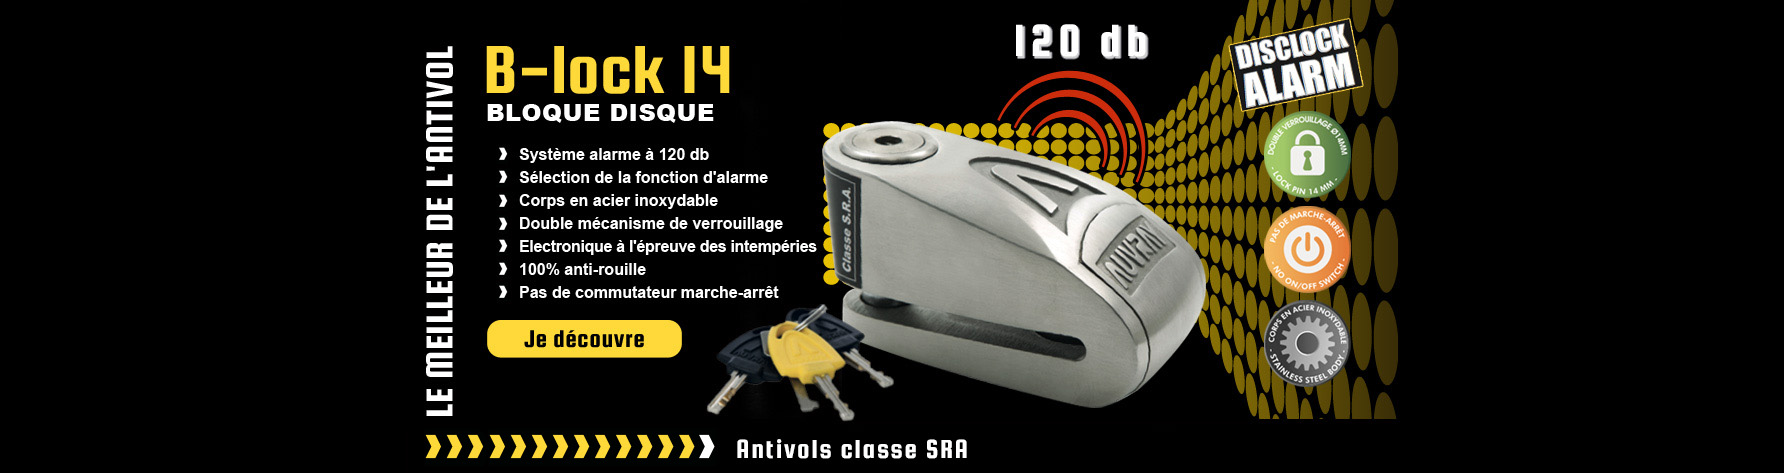 BLOQUE DISQUE – B lock 14 inox Auvray Security